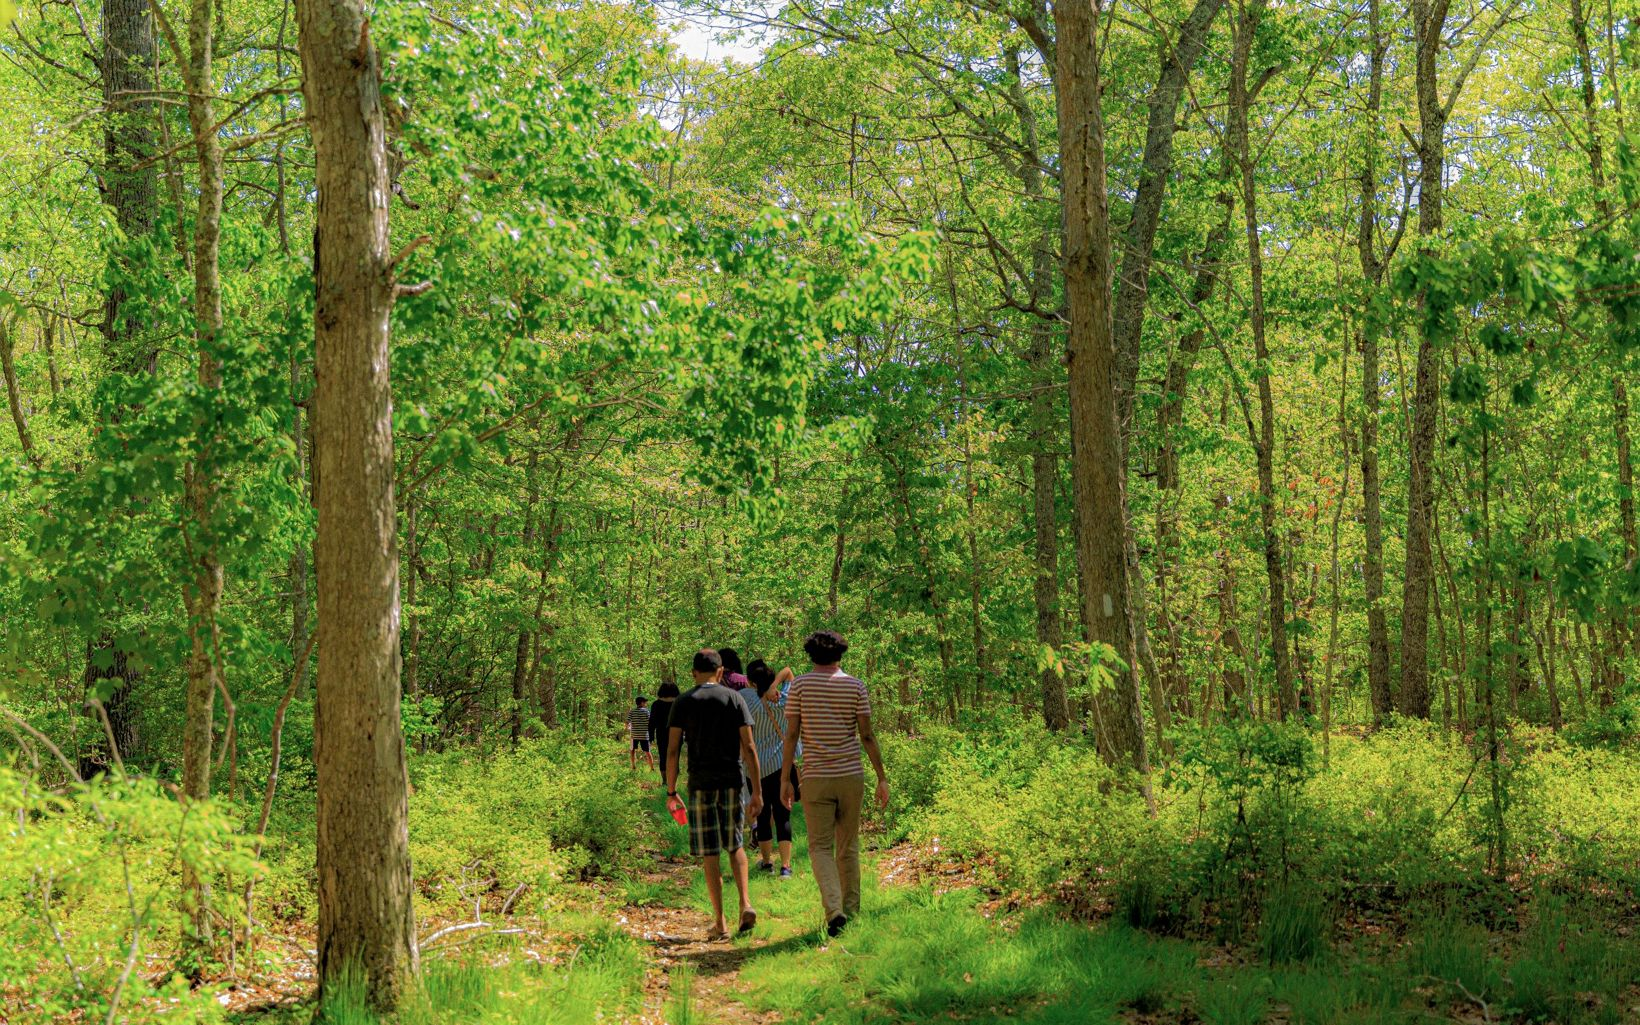 Hikers follow a wide, grassy lane through the forest.